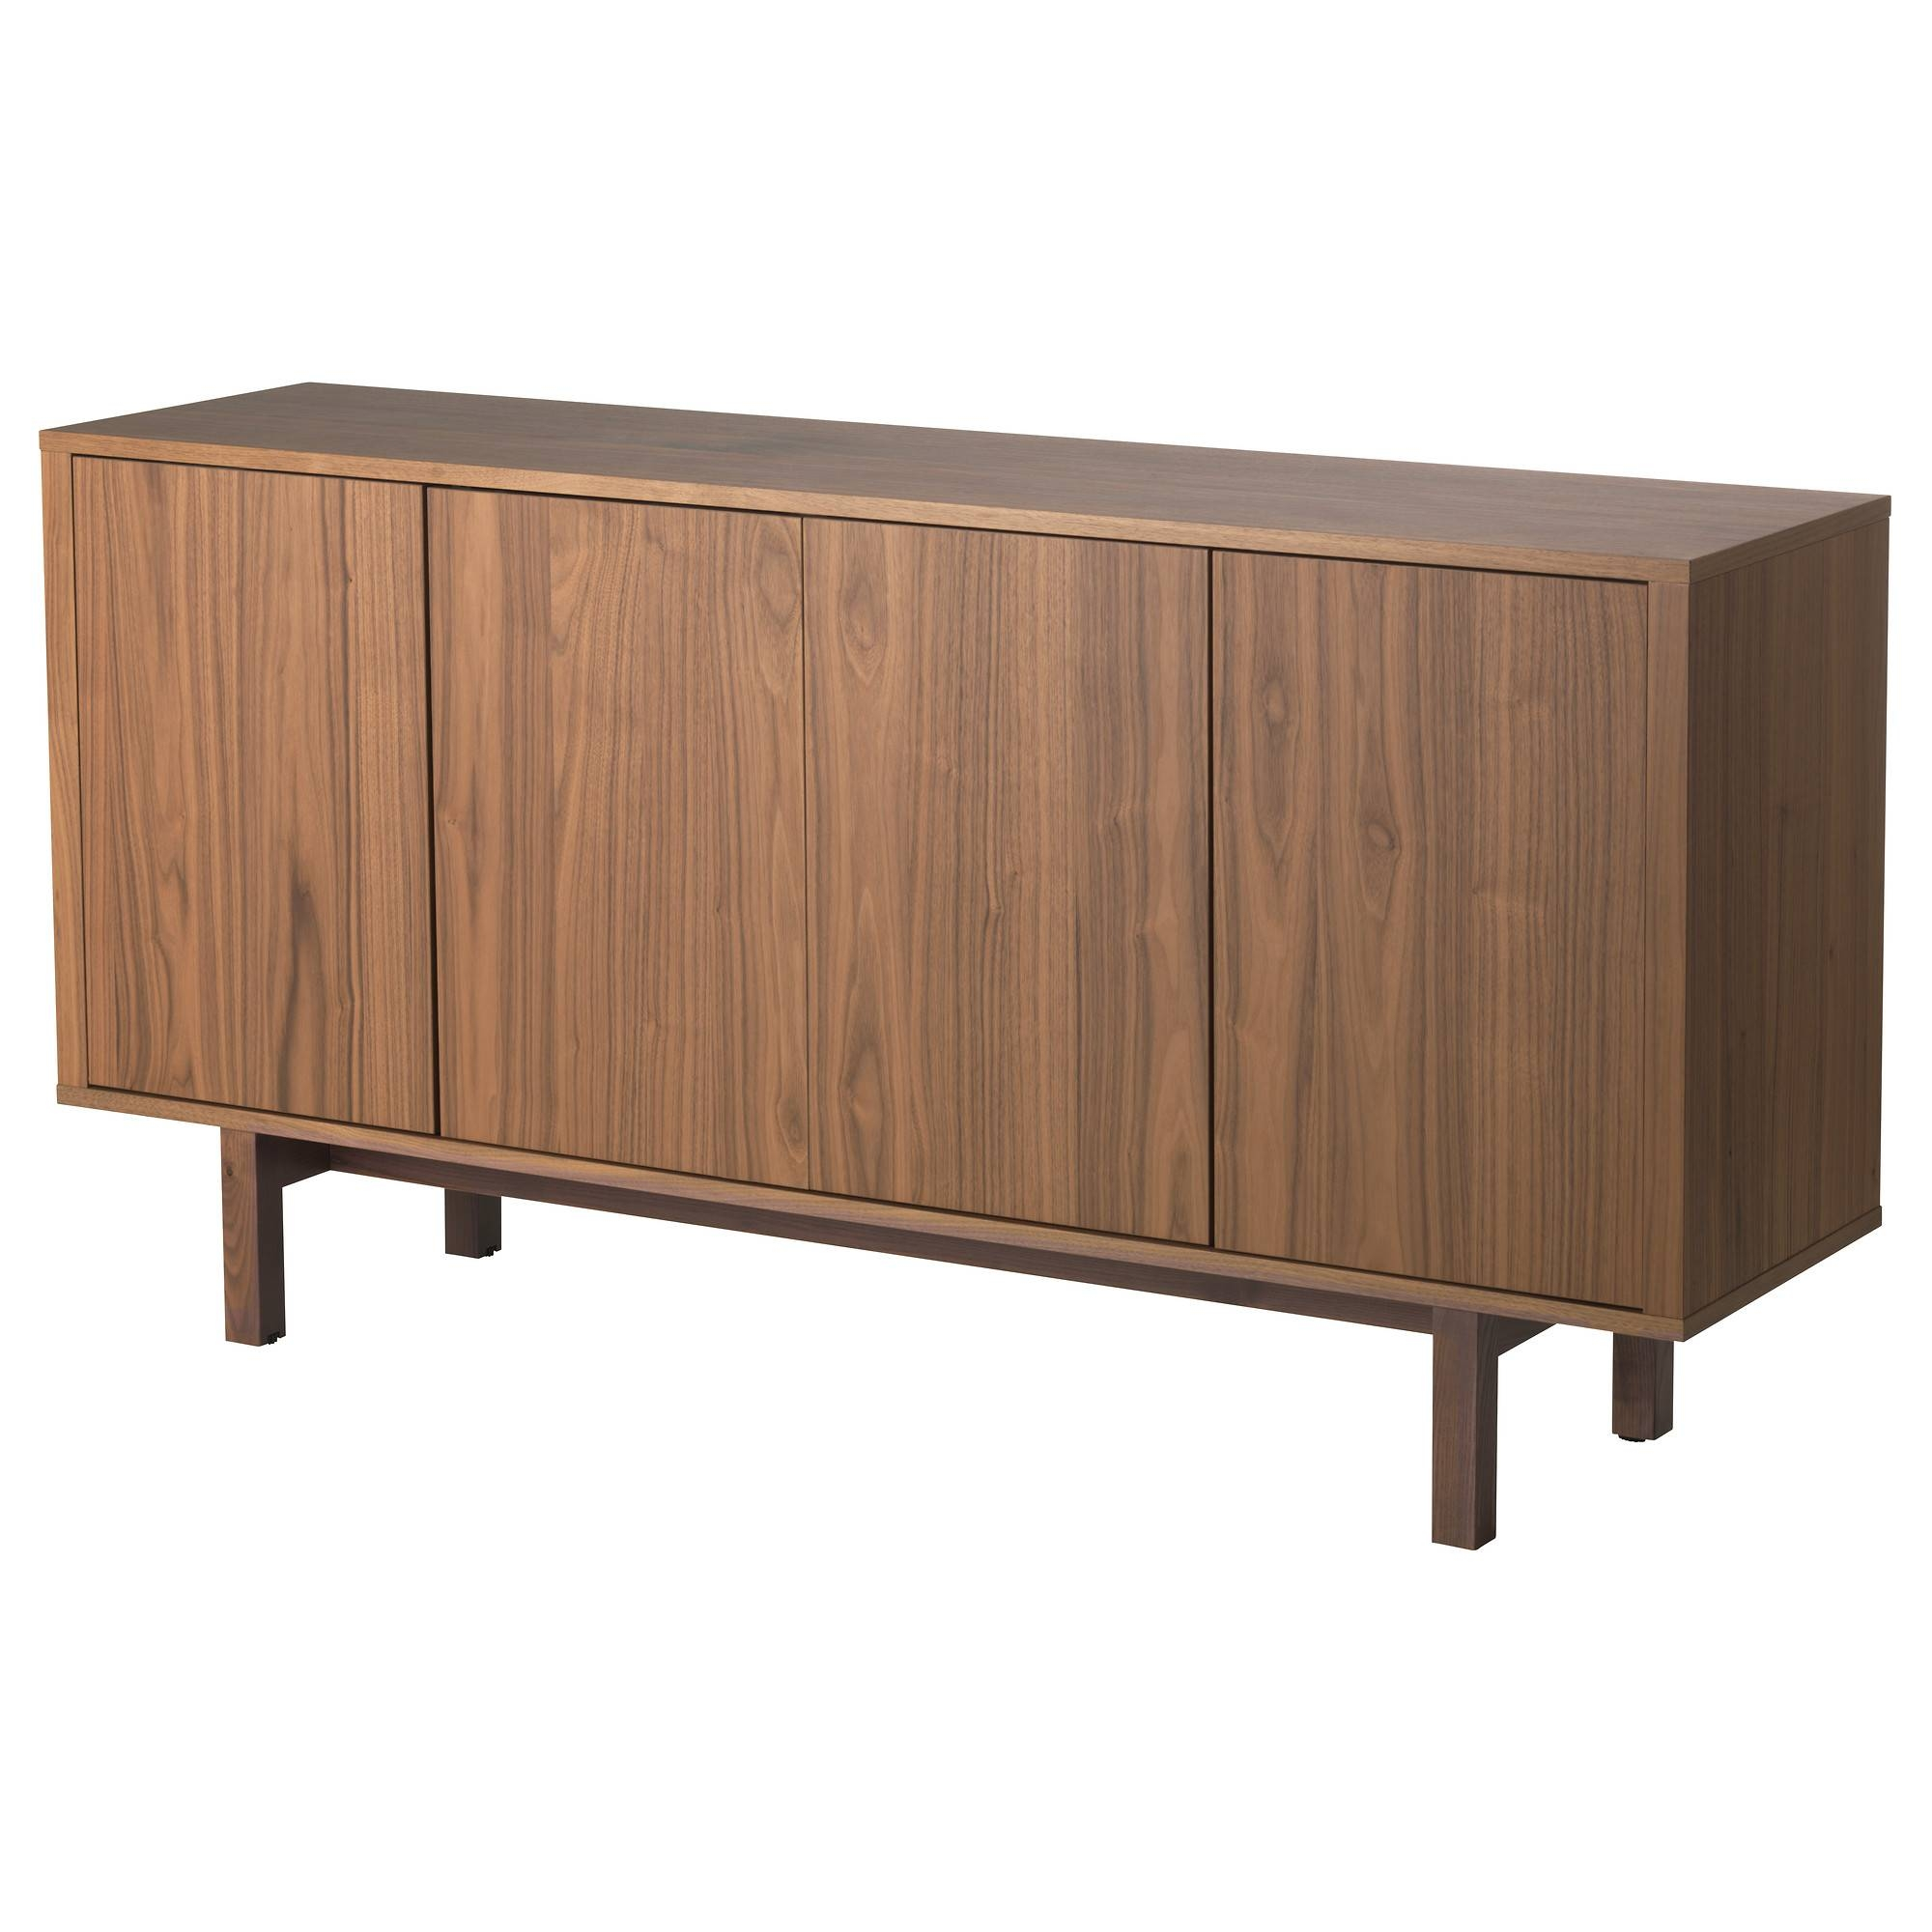 Stockholm Sideboard – Ikea Within Current Ikea Sideboards (#15 of 15)